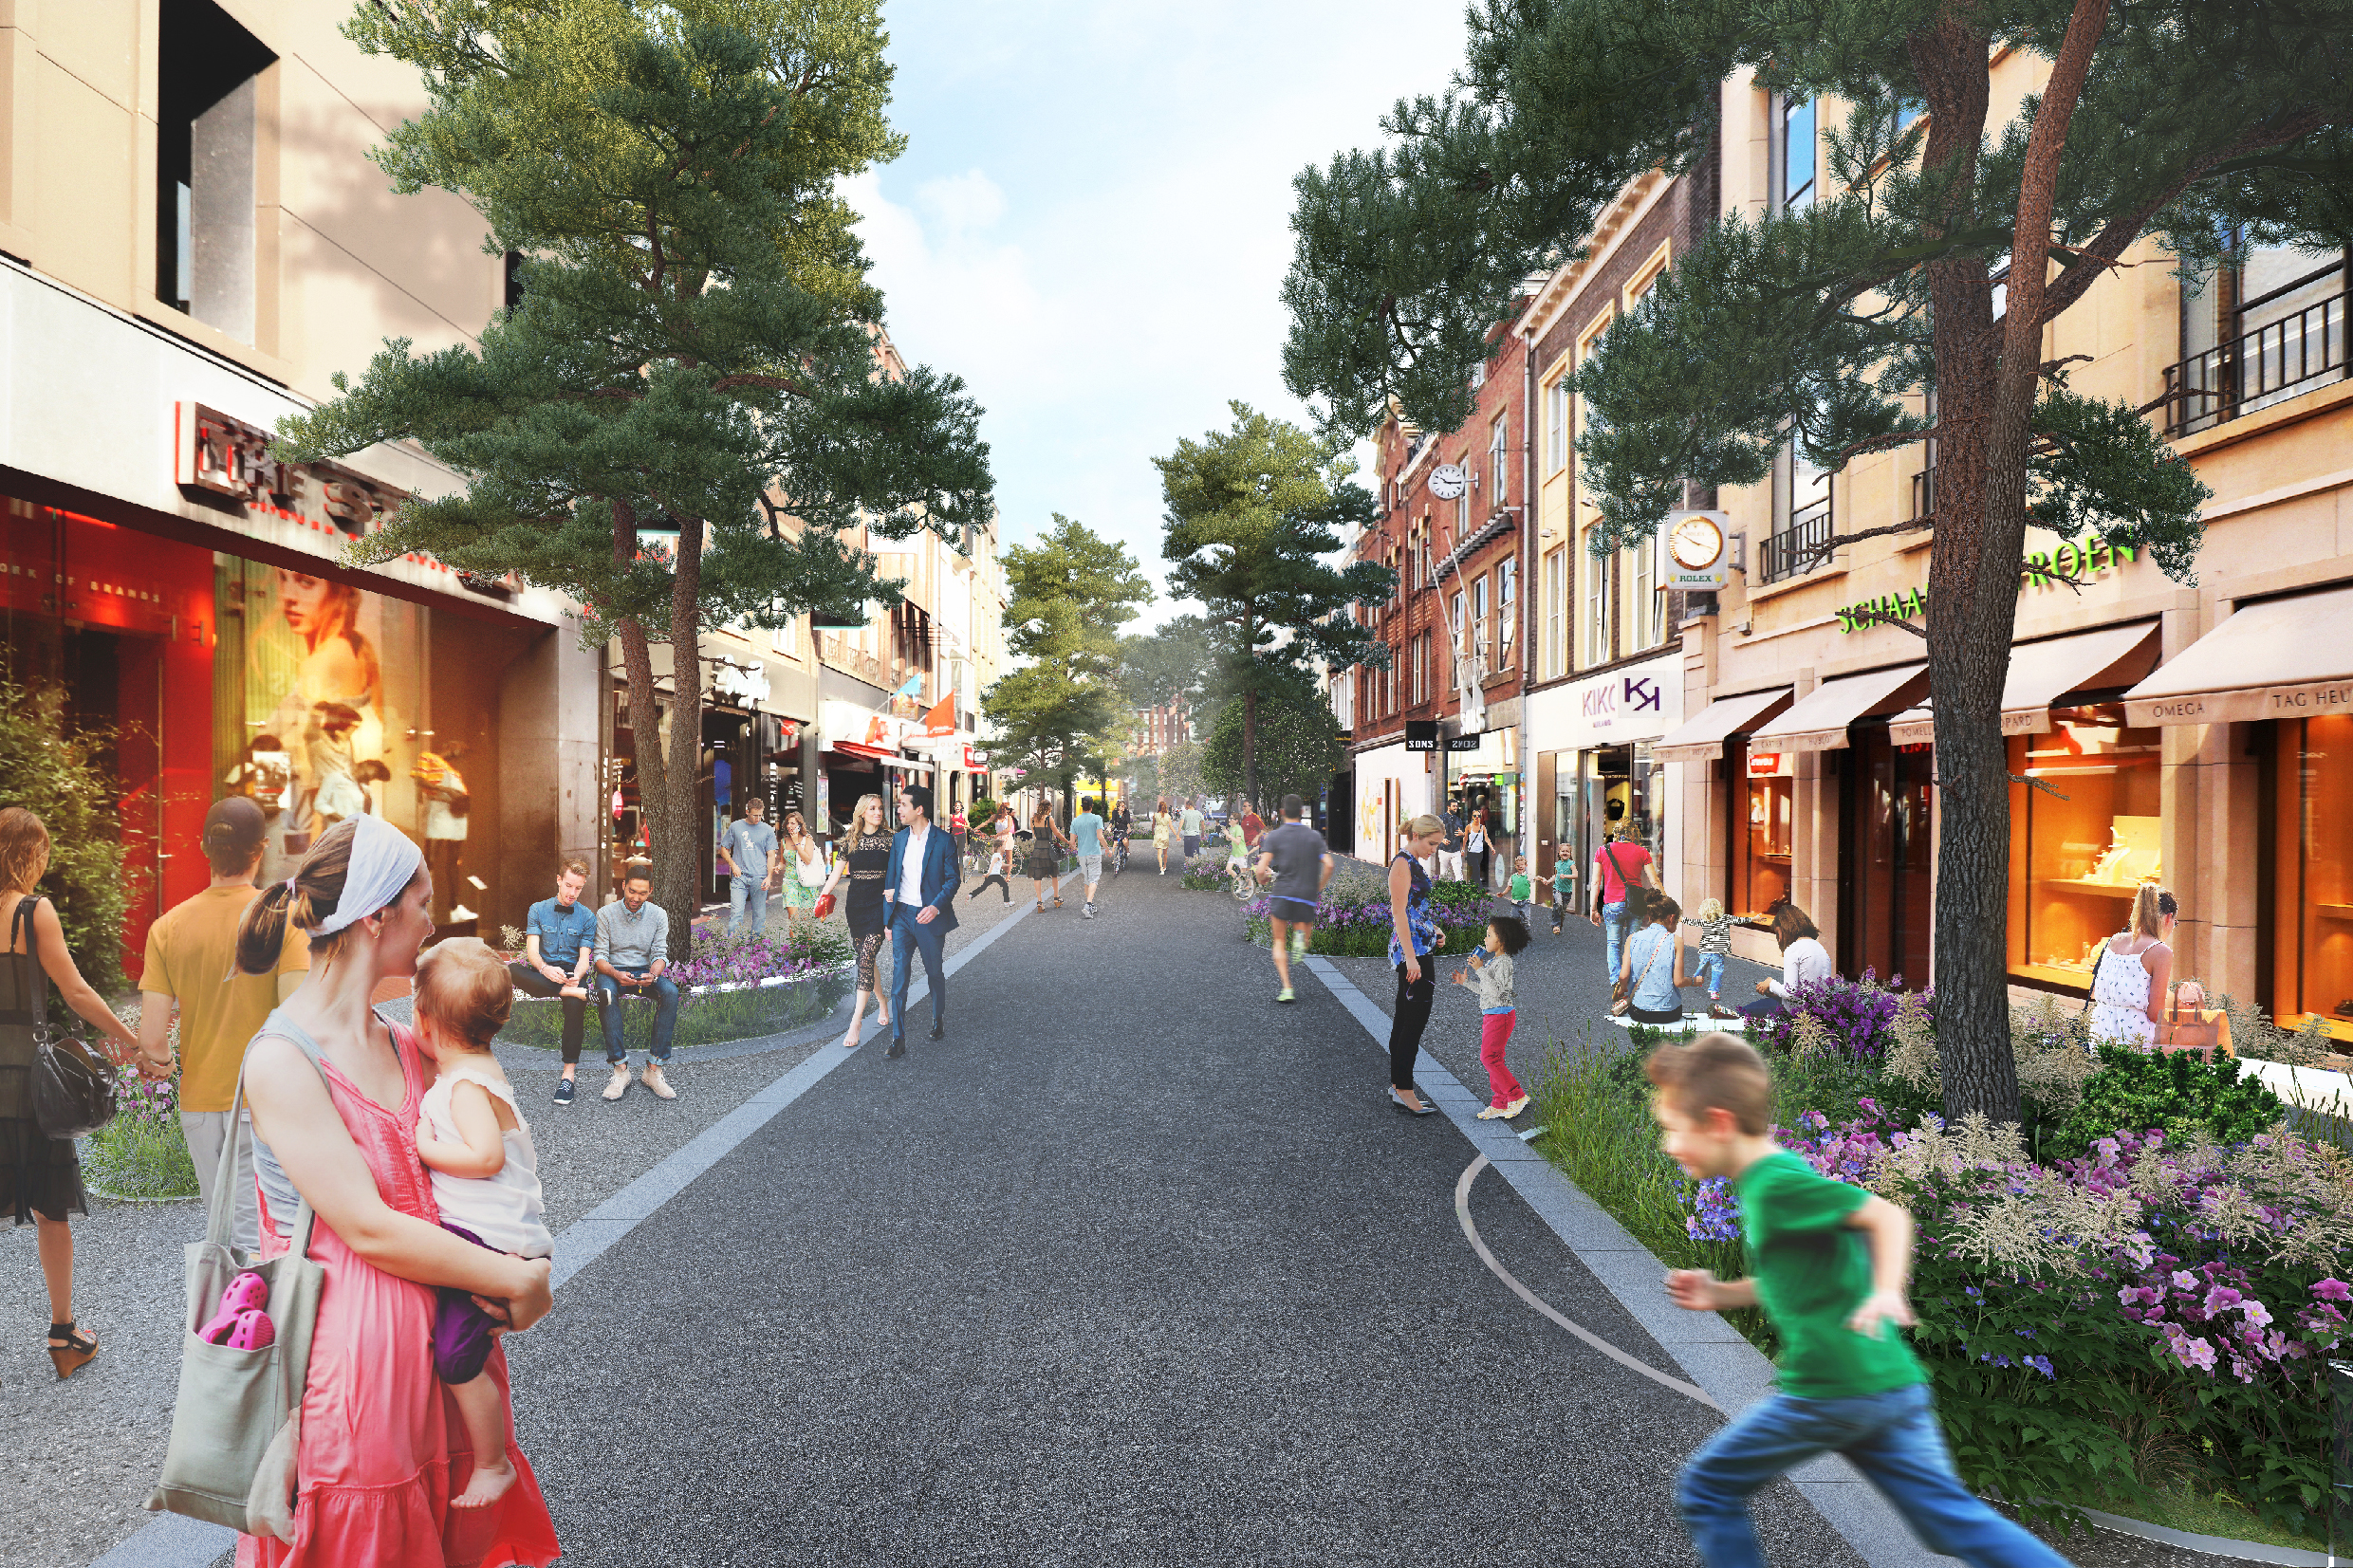 Municipality and MVRDV test pavement for Eindhoven city center